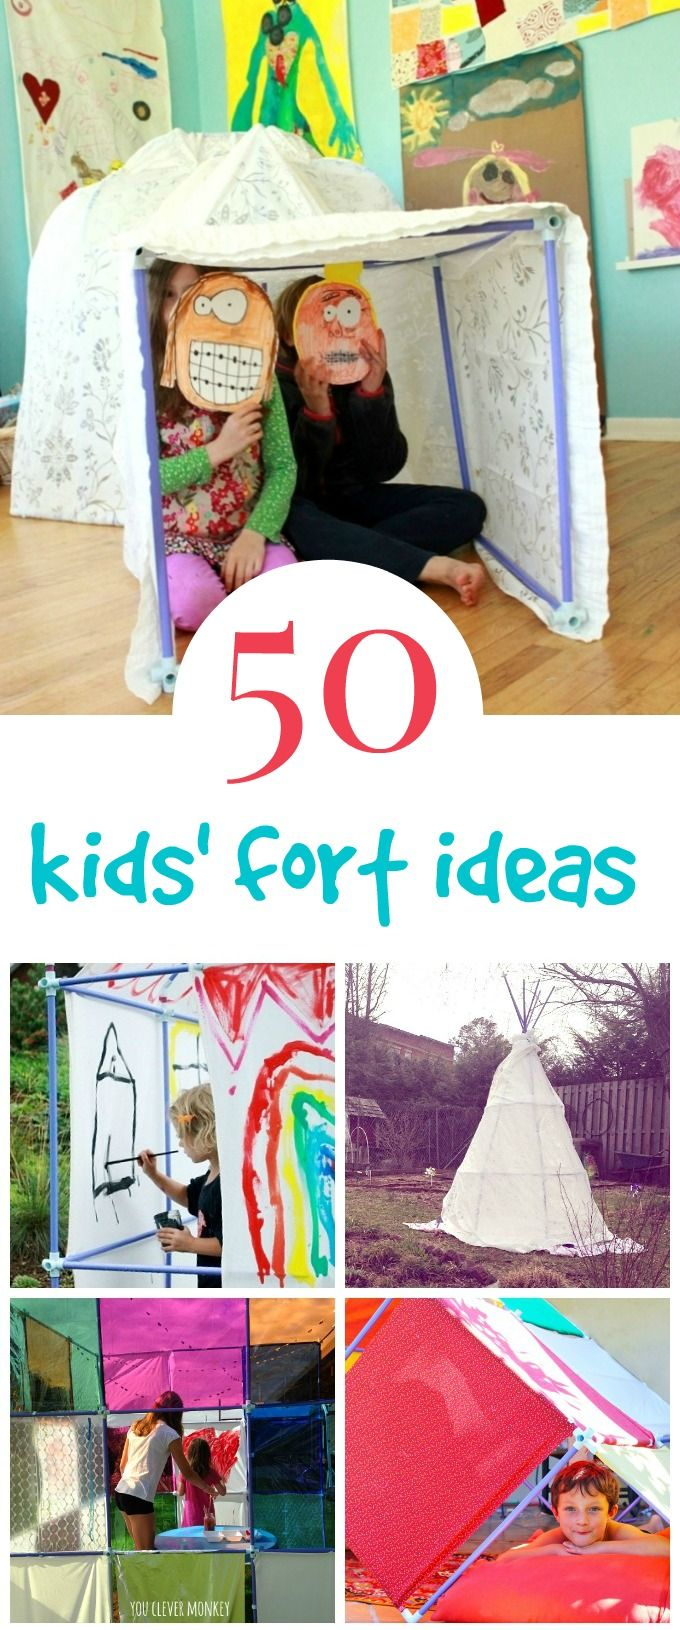 Best 25 kid forts ideas on pinterest forts for kids for Magic cabin tree fort kit